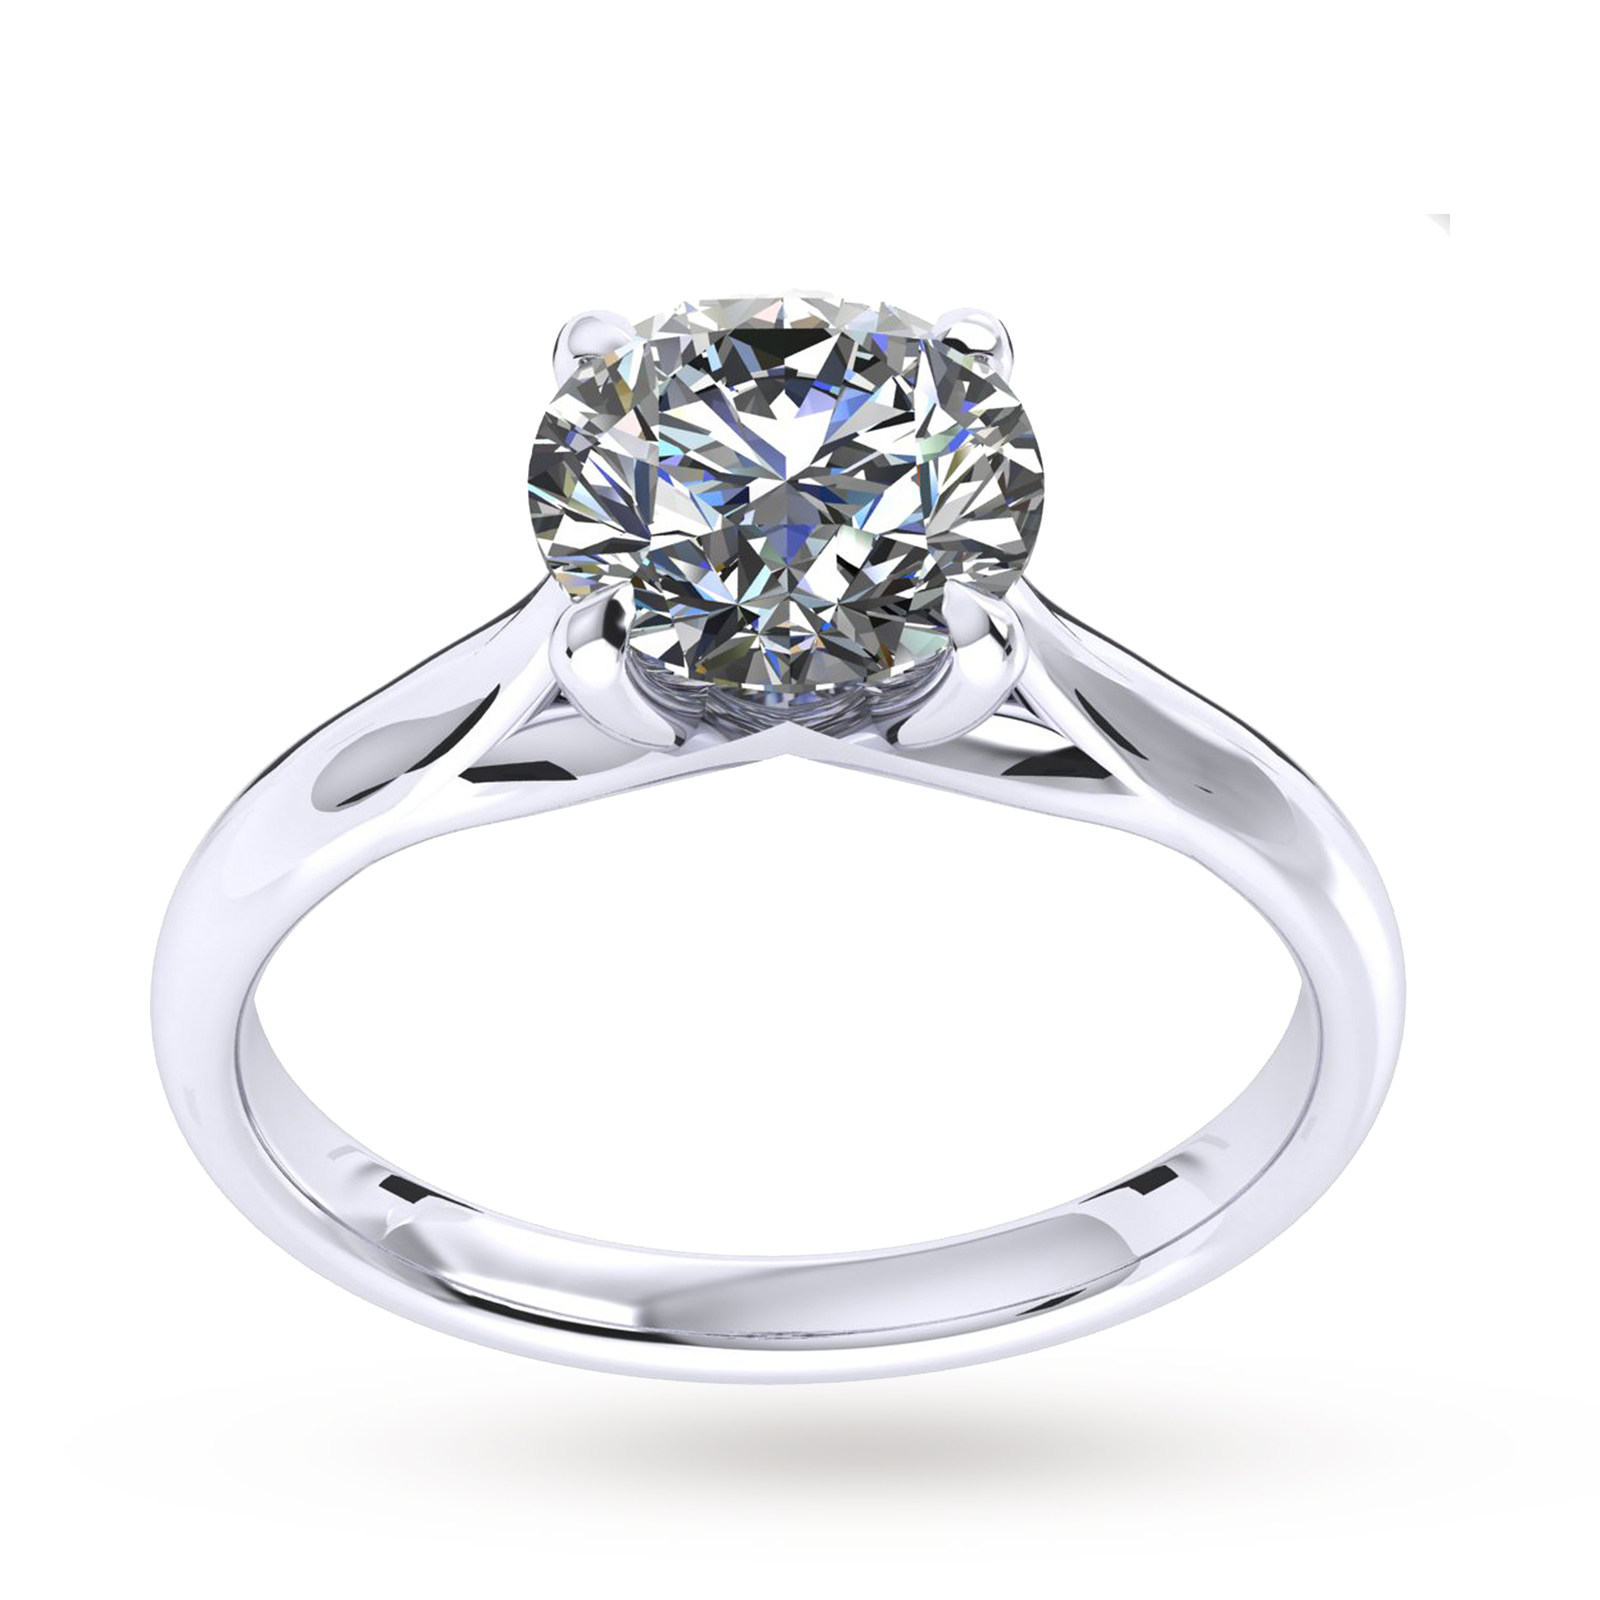 Ena Harkness Engagement Ring 0.25 Carat